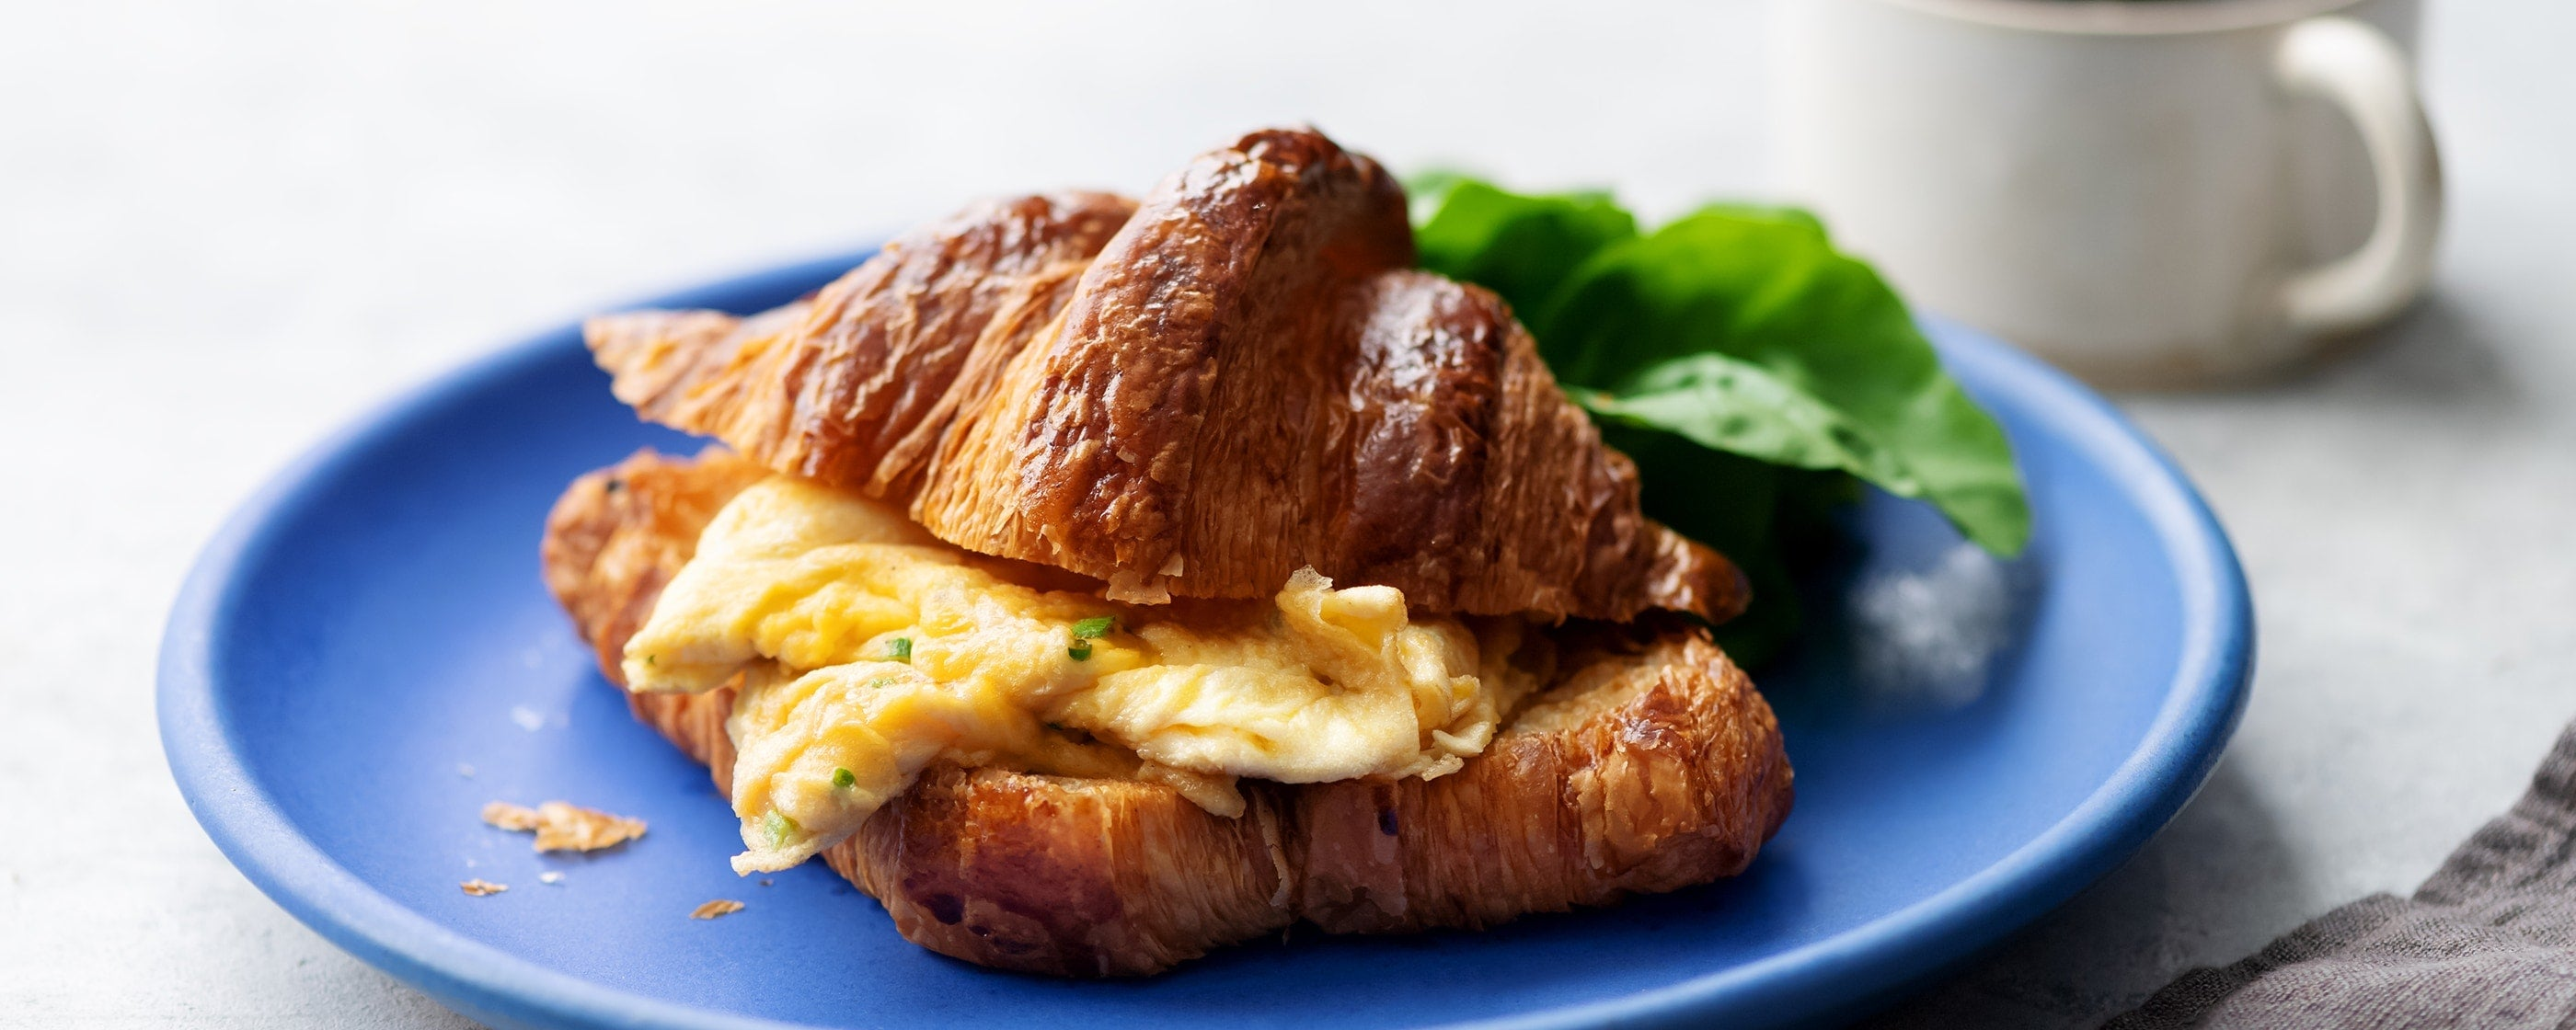 Croissant Sandwich with Egg